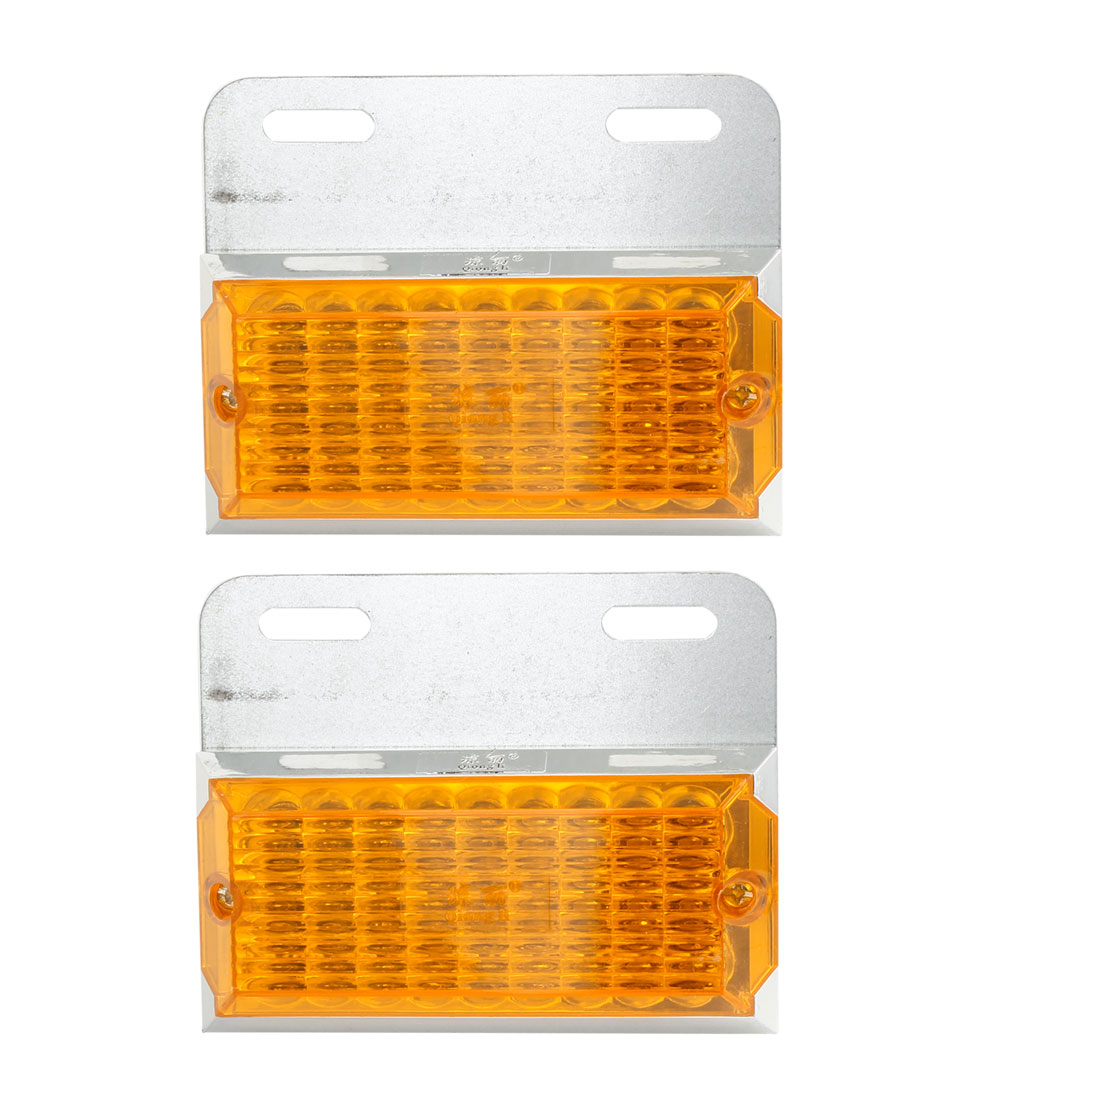 2 Pcs Car Yellow Plastic 27 LED Front Fender Side Marker Light Lamp DC 24V